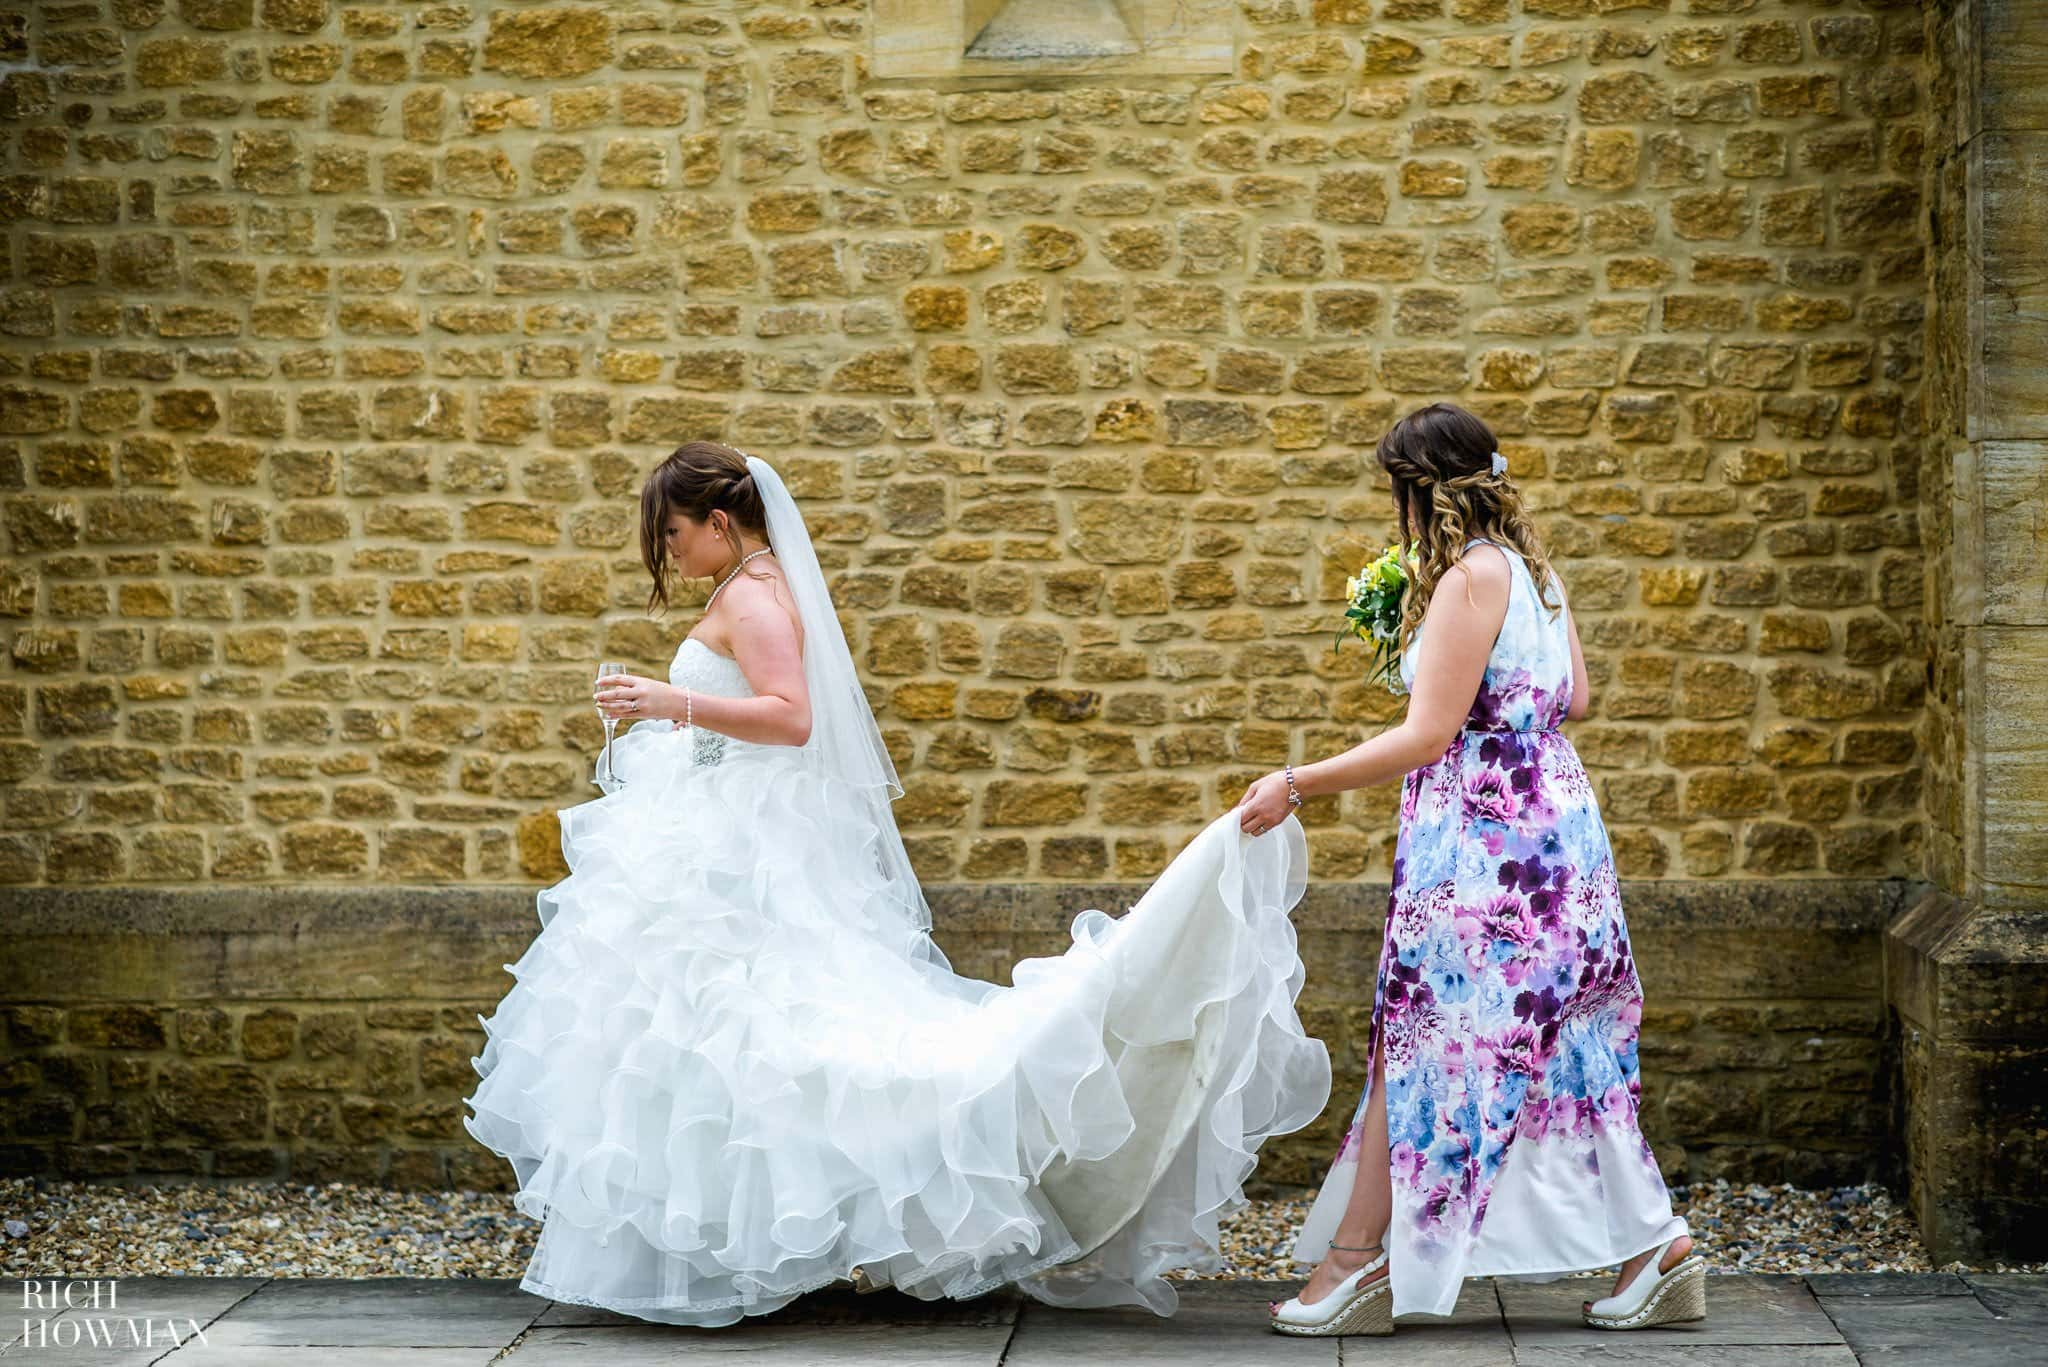 Bridesmaid holding the brides dress for her as she walks